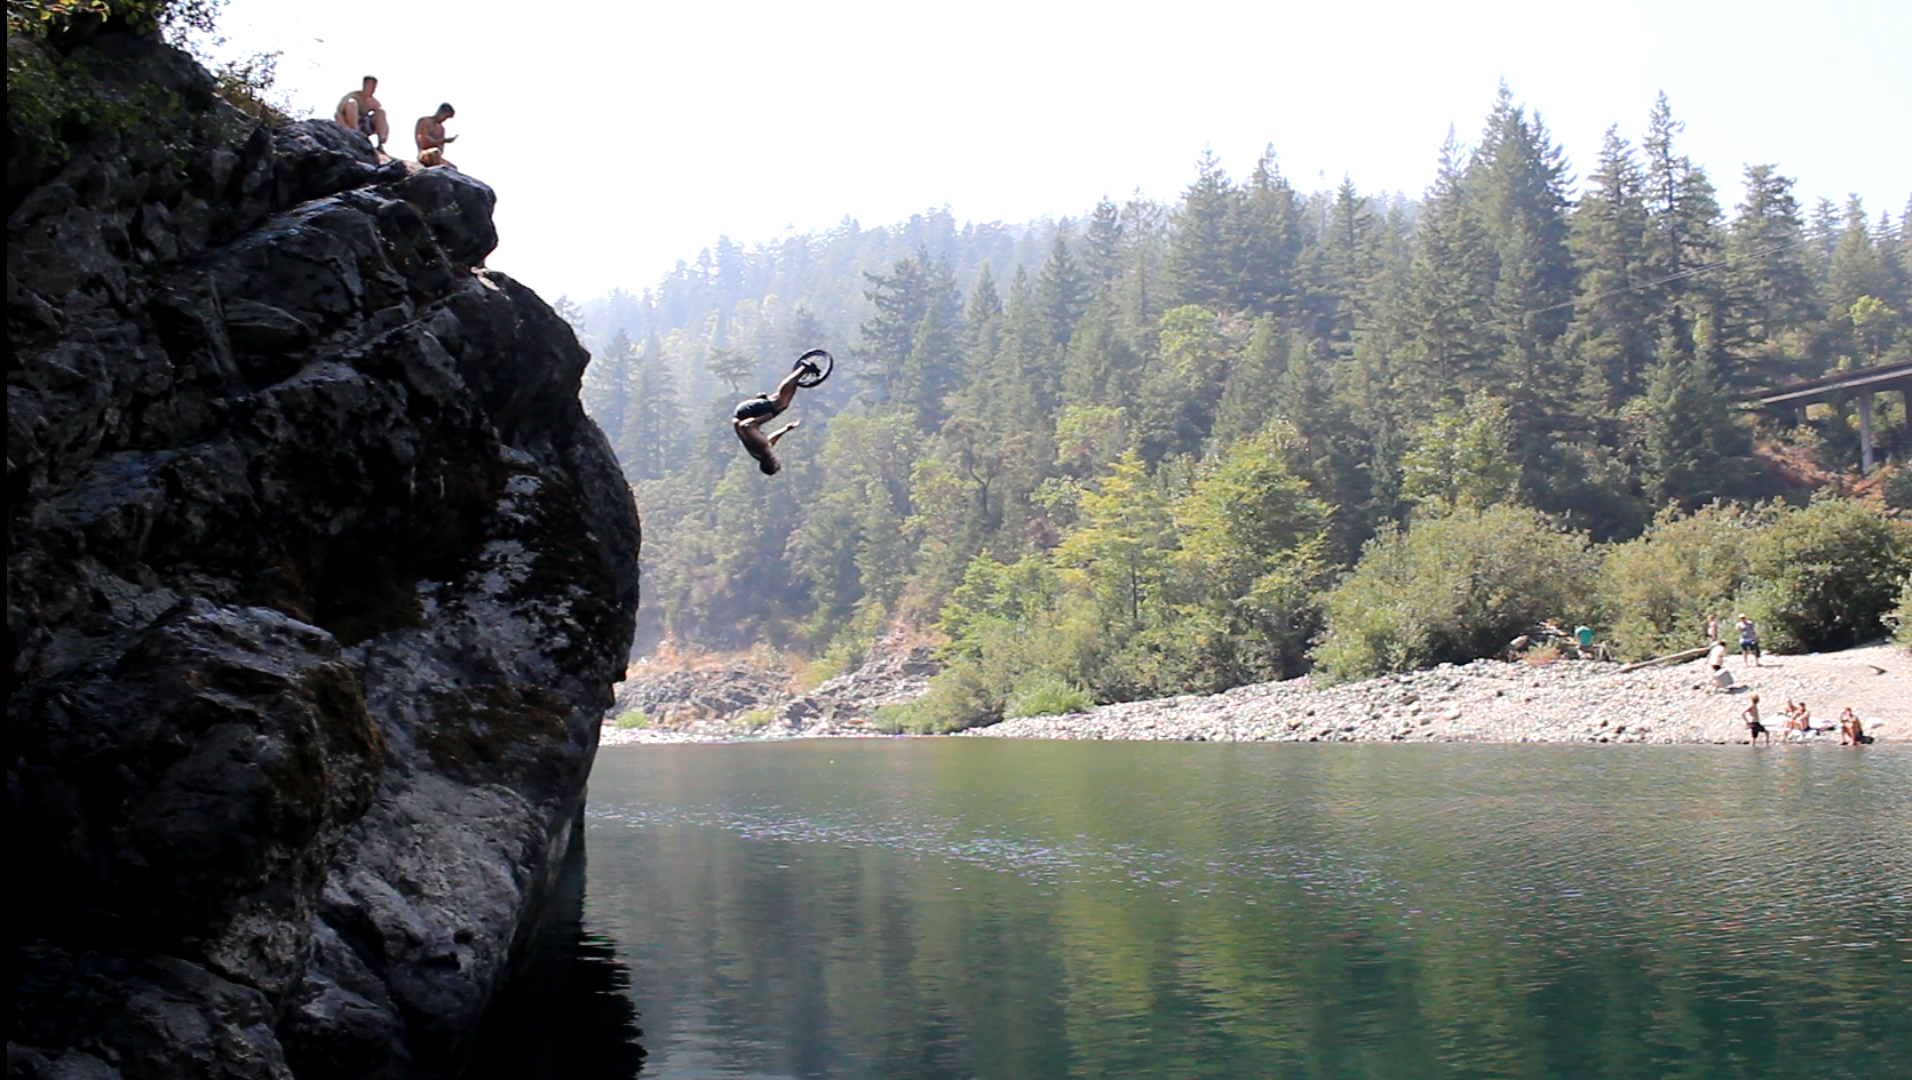 Alex doing a flip down a cliff with his unicycle